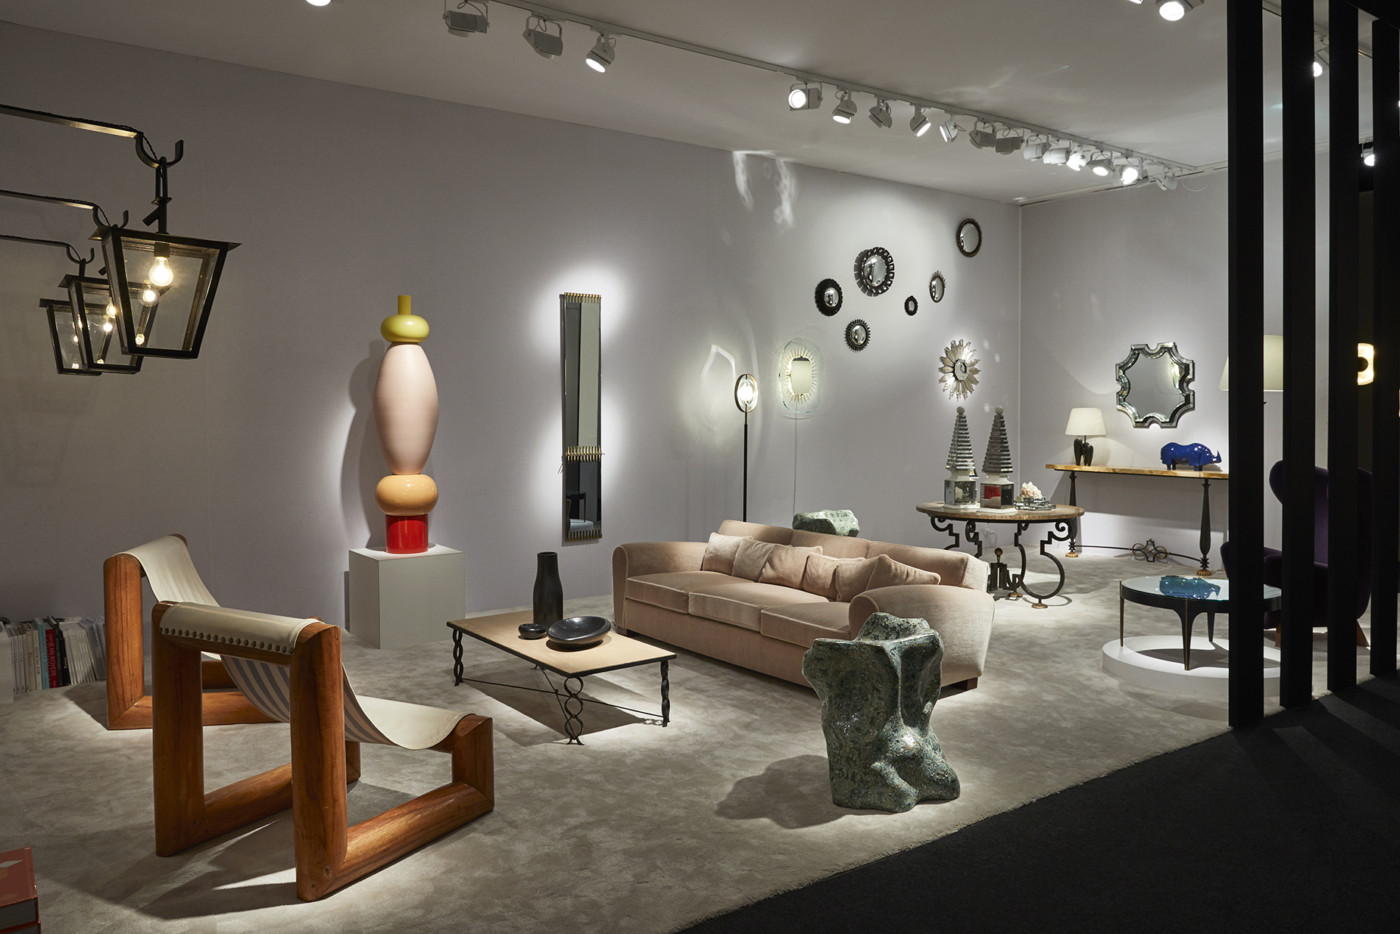 Be Inspired By The Wonders Of These Contemporary Art Galleries art galleries Be Inspired By The Wonders Of These Contemporary Art Galleries Galerie Chastel Mar  chal